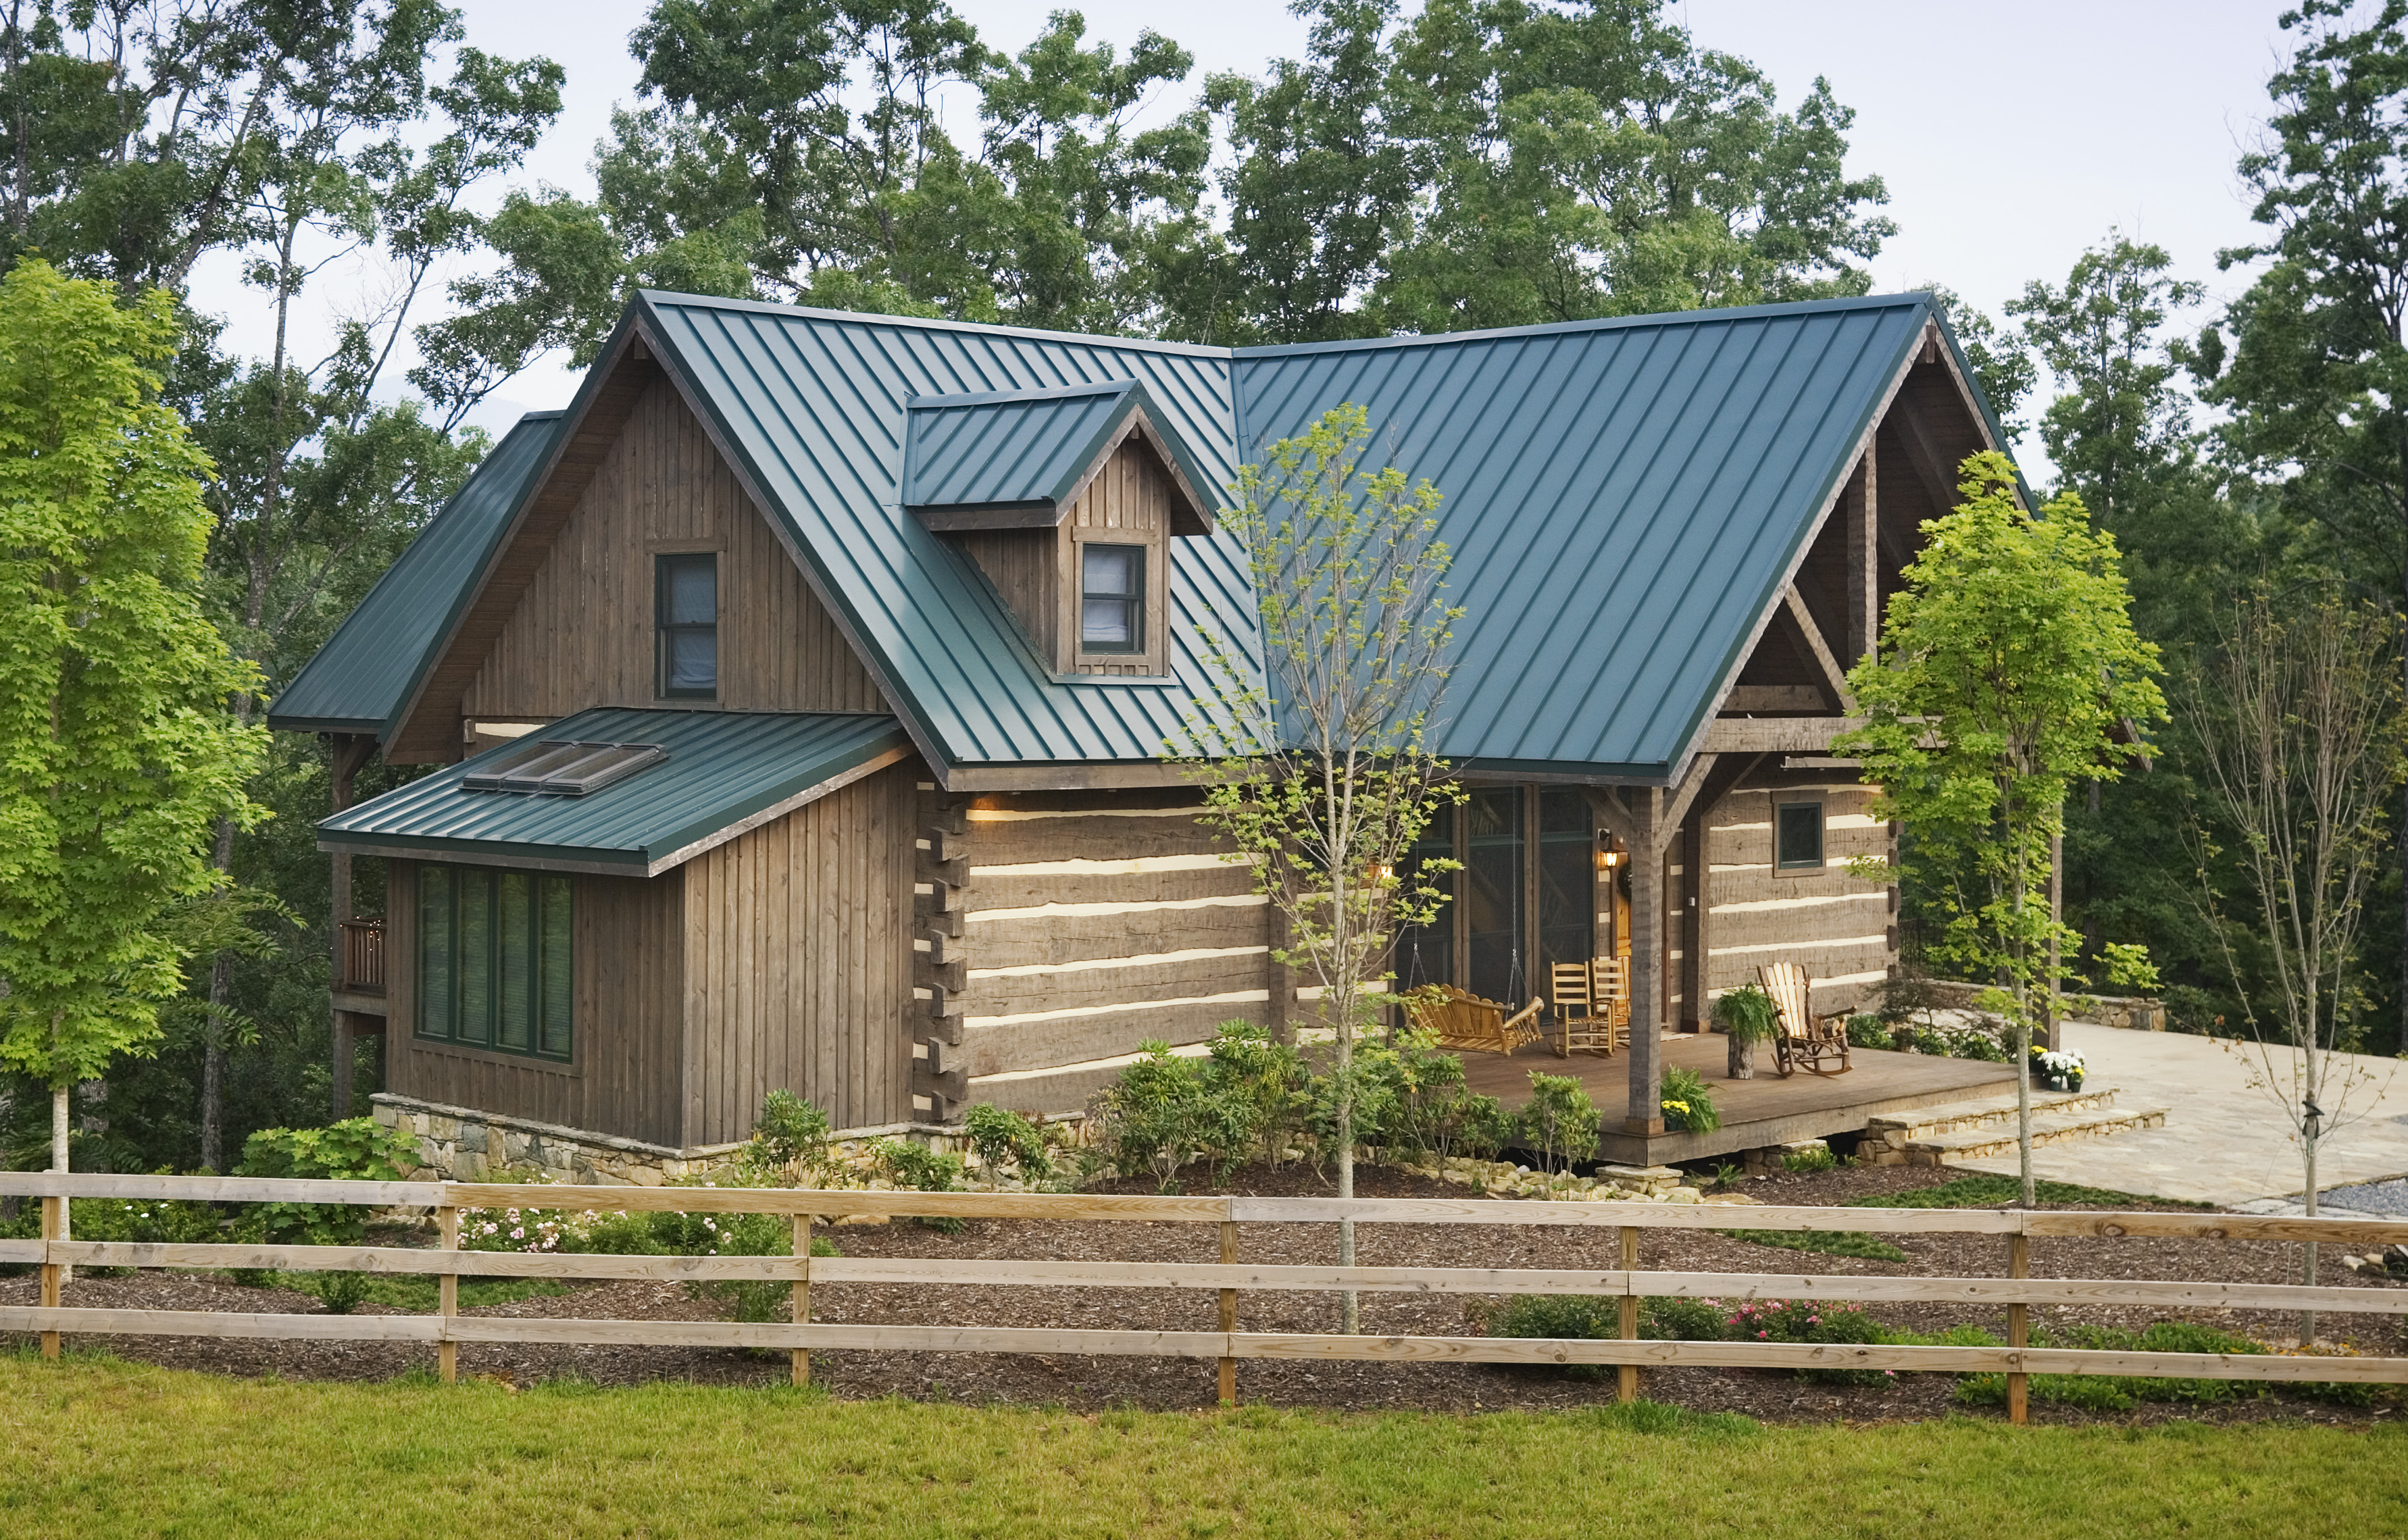 Log home exteriors How to stain log cabin